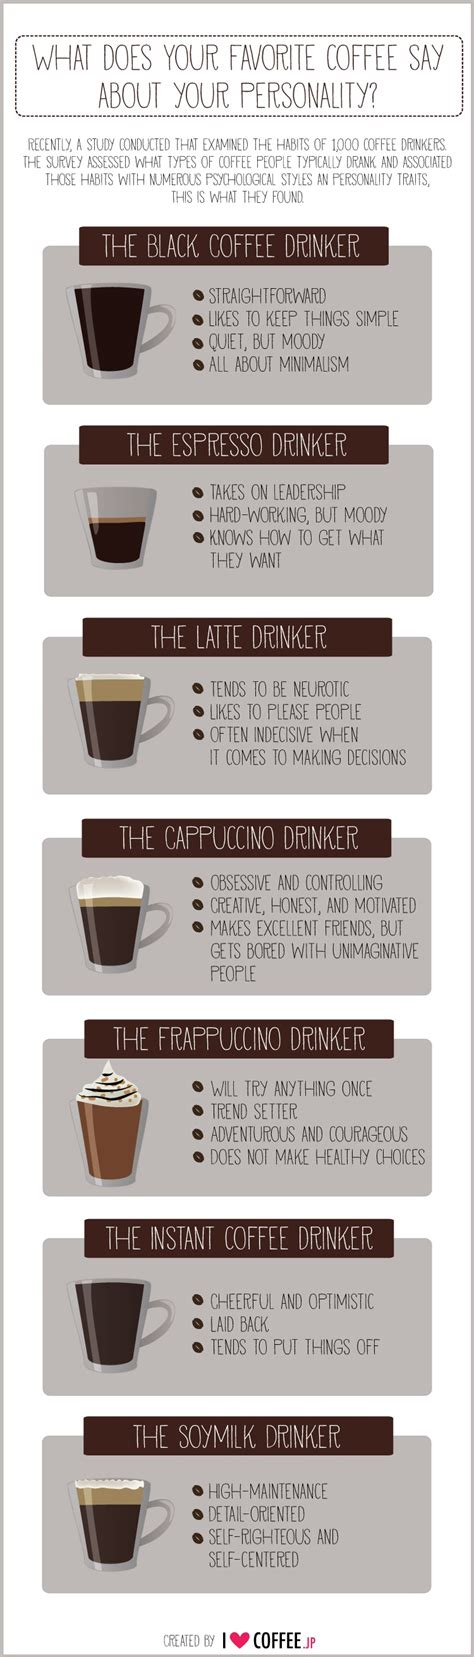 Coffee Infographic: What does your favourite coffee say about your Personality?   Coffee Vending